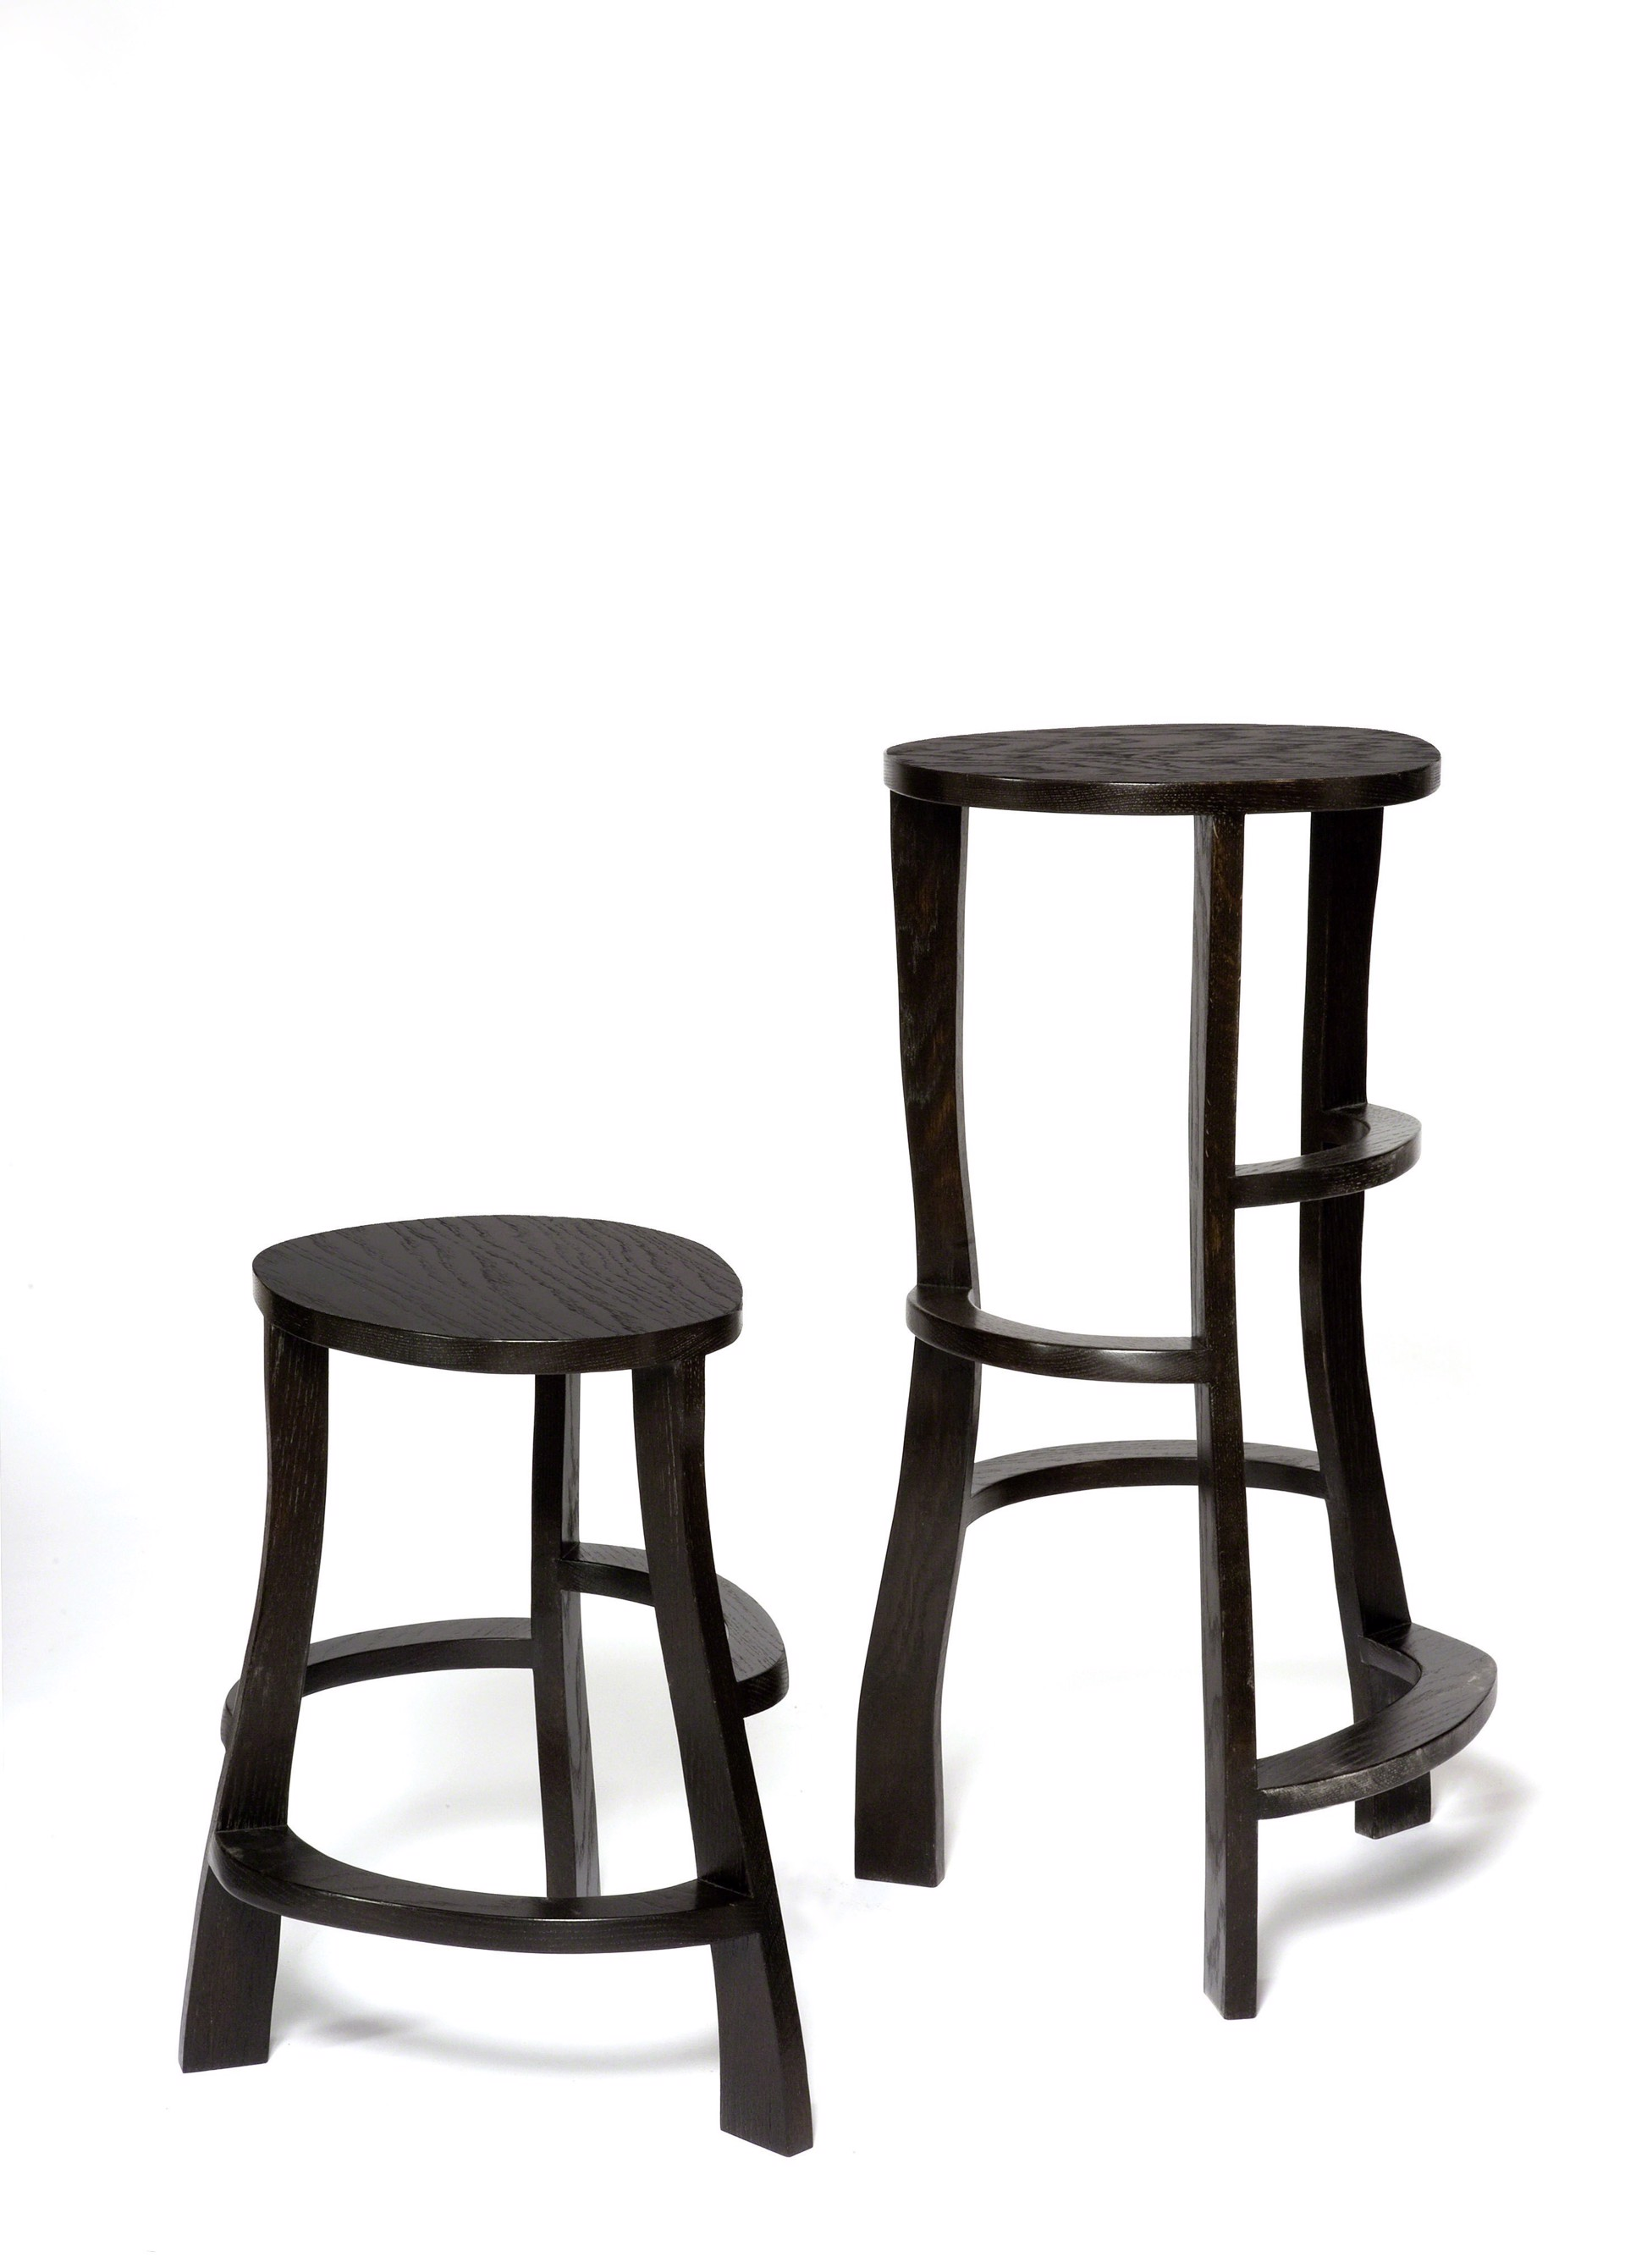 """Meanders"" Bar stool    by Jacques Jarrige"